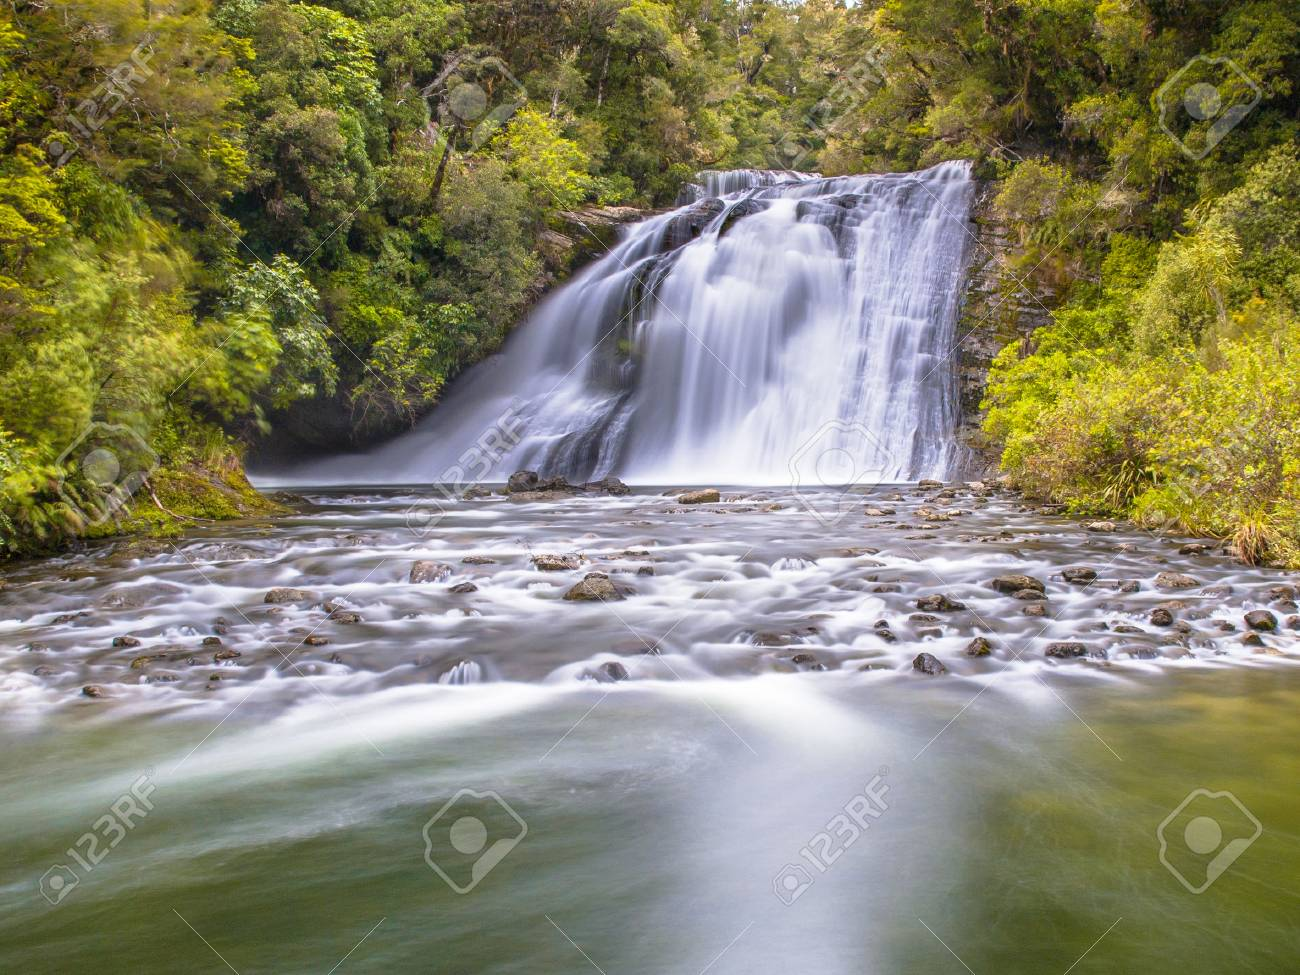 Long exposure image of a waterfall in lush rainforest of Te Urewera National Park in New Zealand - 110766220